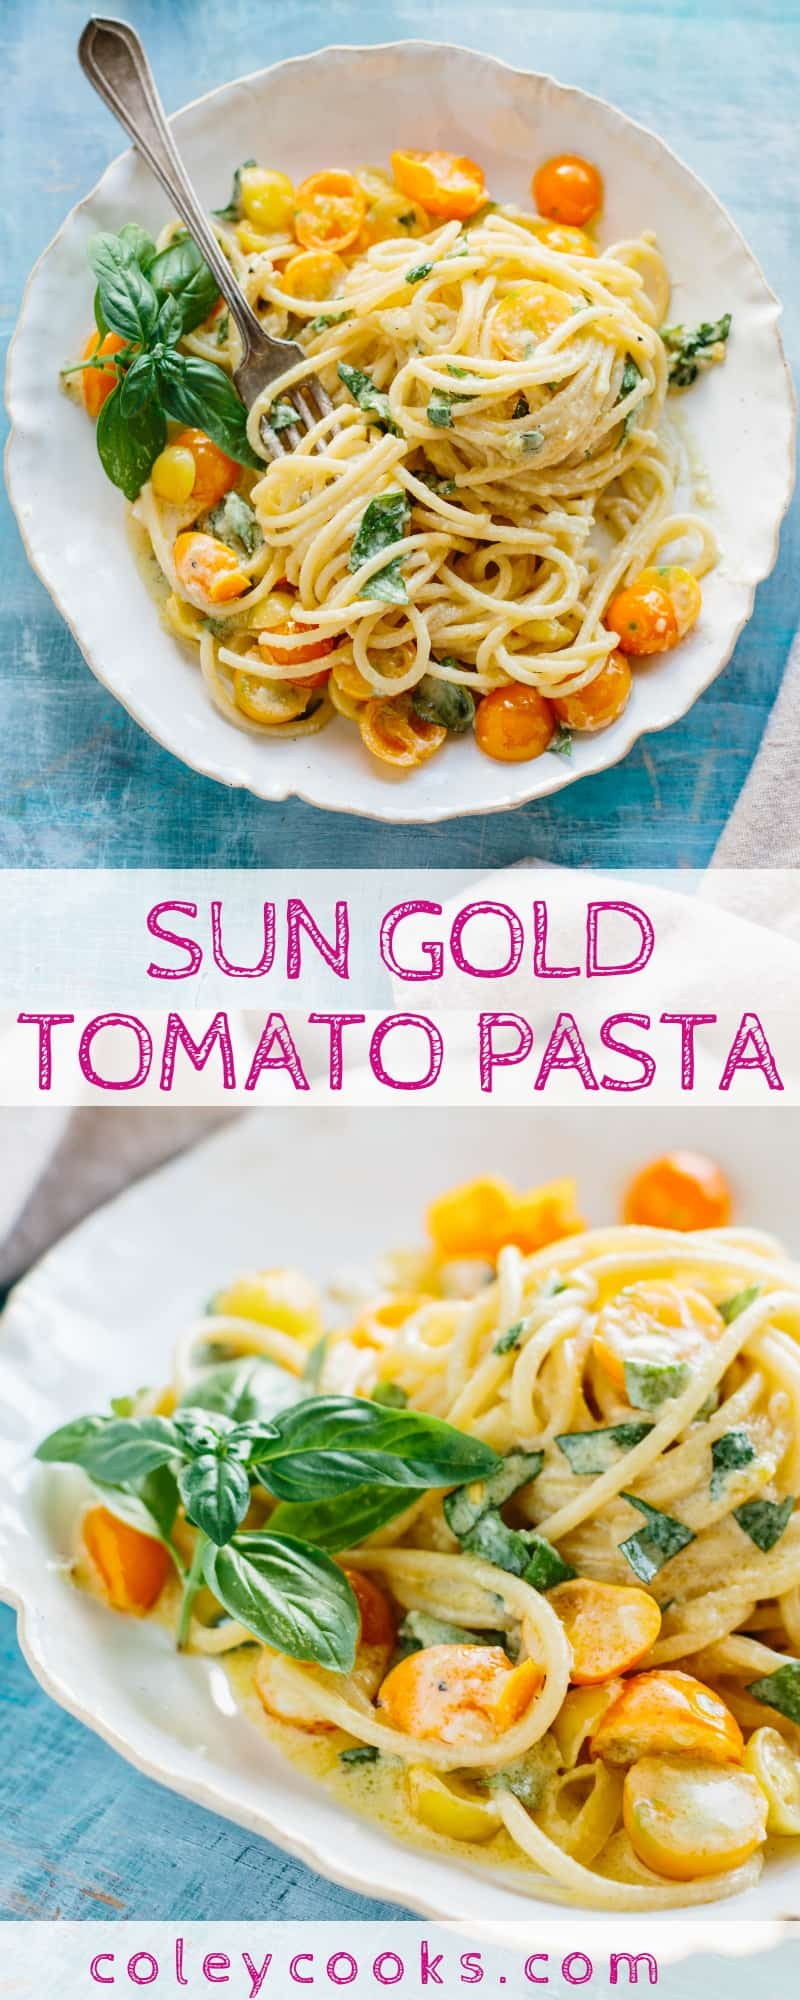 SUN GOLD TOMATO PASTA   This no cook sauce is so easy to make and allows those sugary sweet sun gold tomatoes to shine. My favorite pasta ever!  #sungold #tomatoes #easy #pasta #recipe   ColeyCooks.com